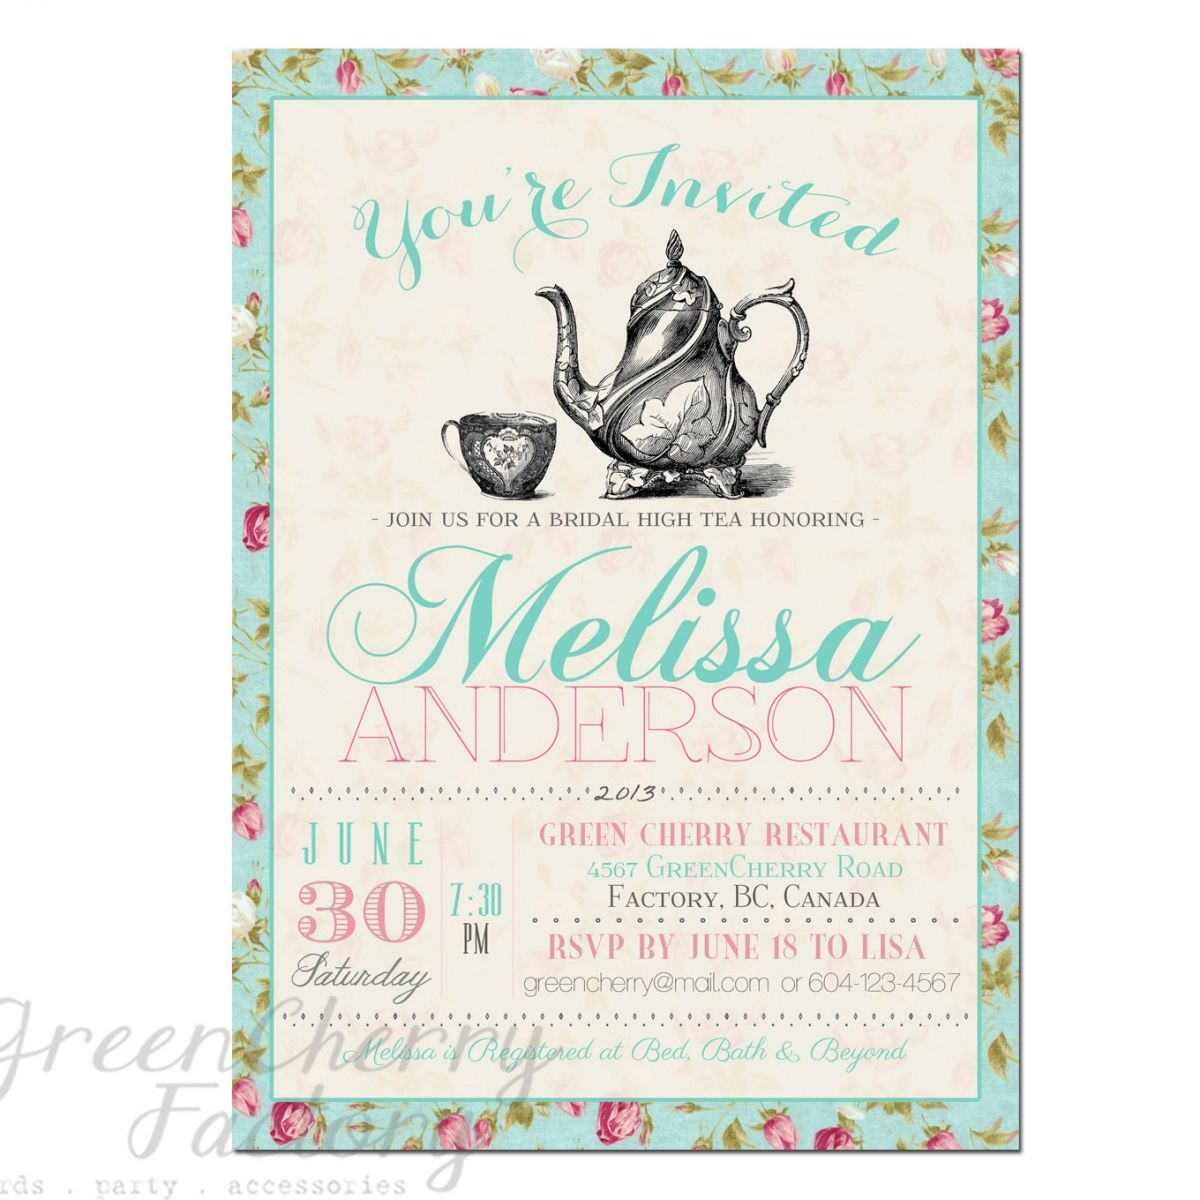 Tea party invitation templates to print free printable tea party tea party invitation templates to print free printable tea party invitations templates stopboris Choice Image